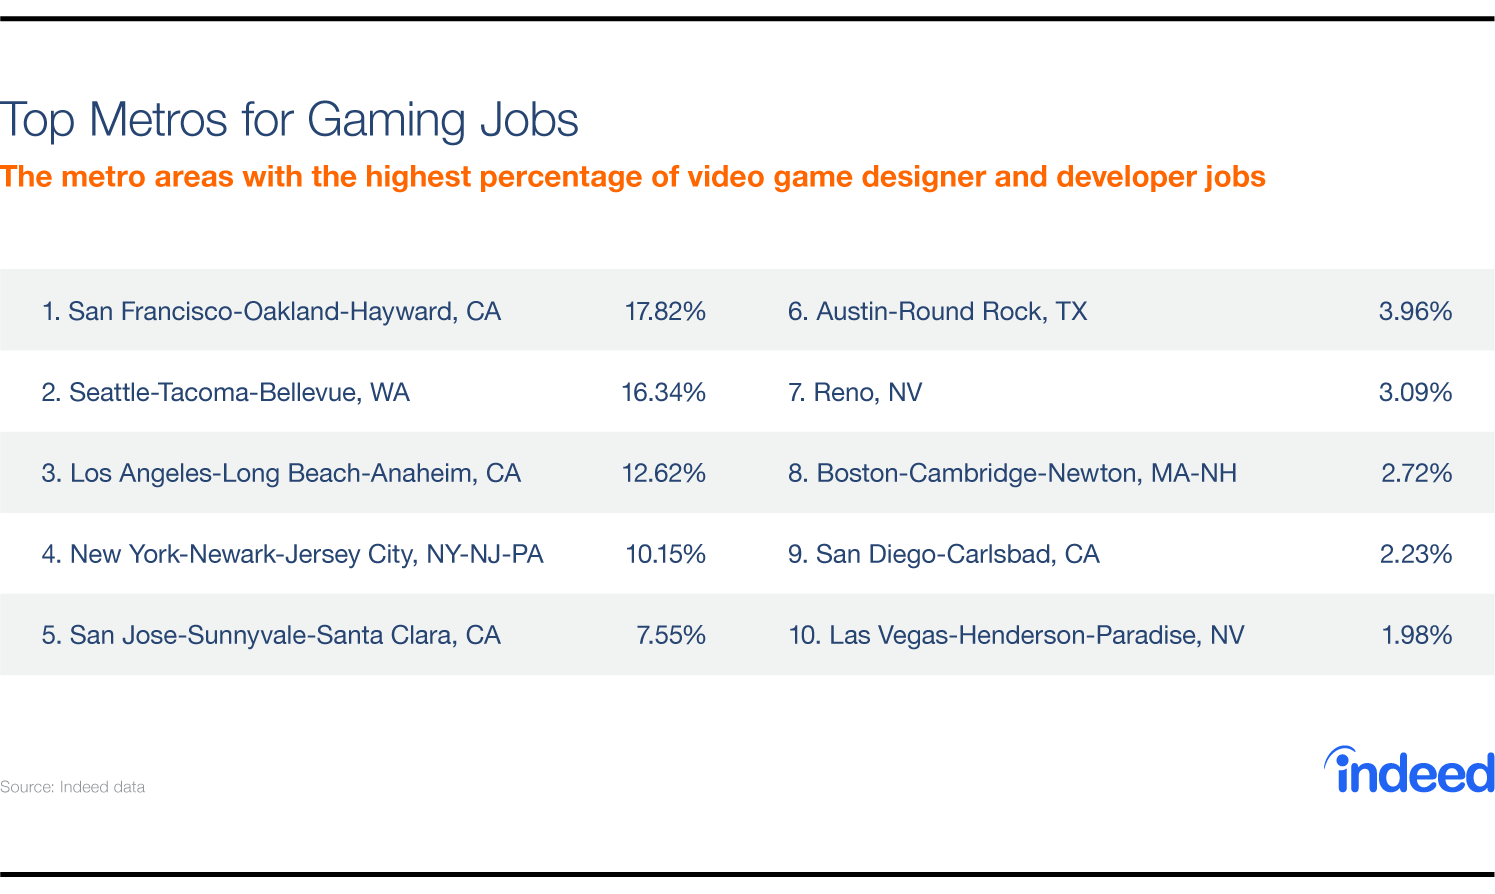 Are game developers in demand? These are the top metros for gaming jobs.